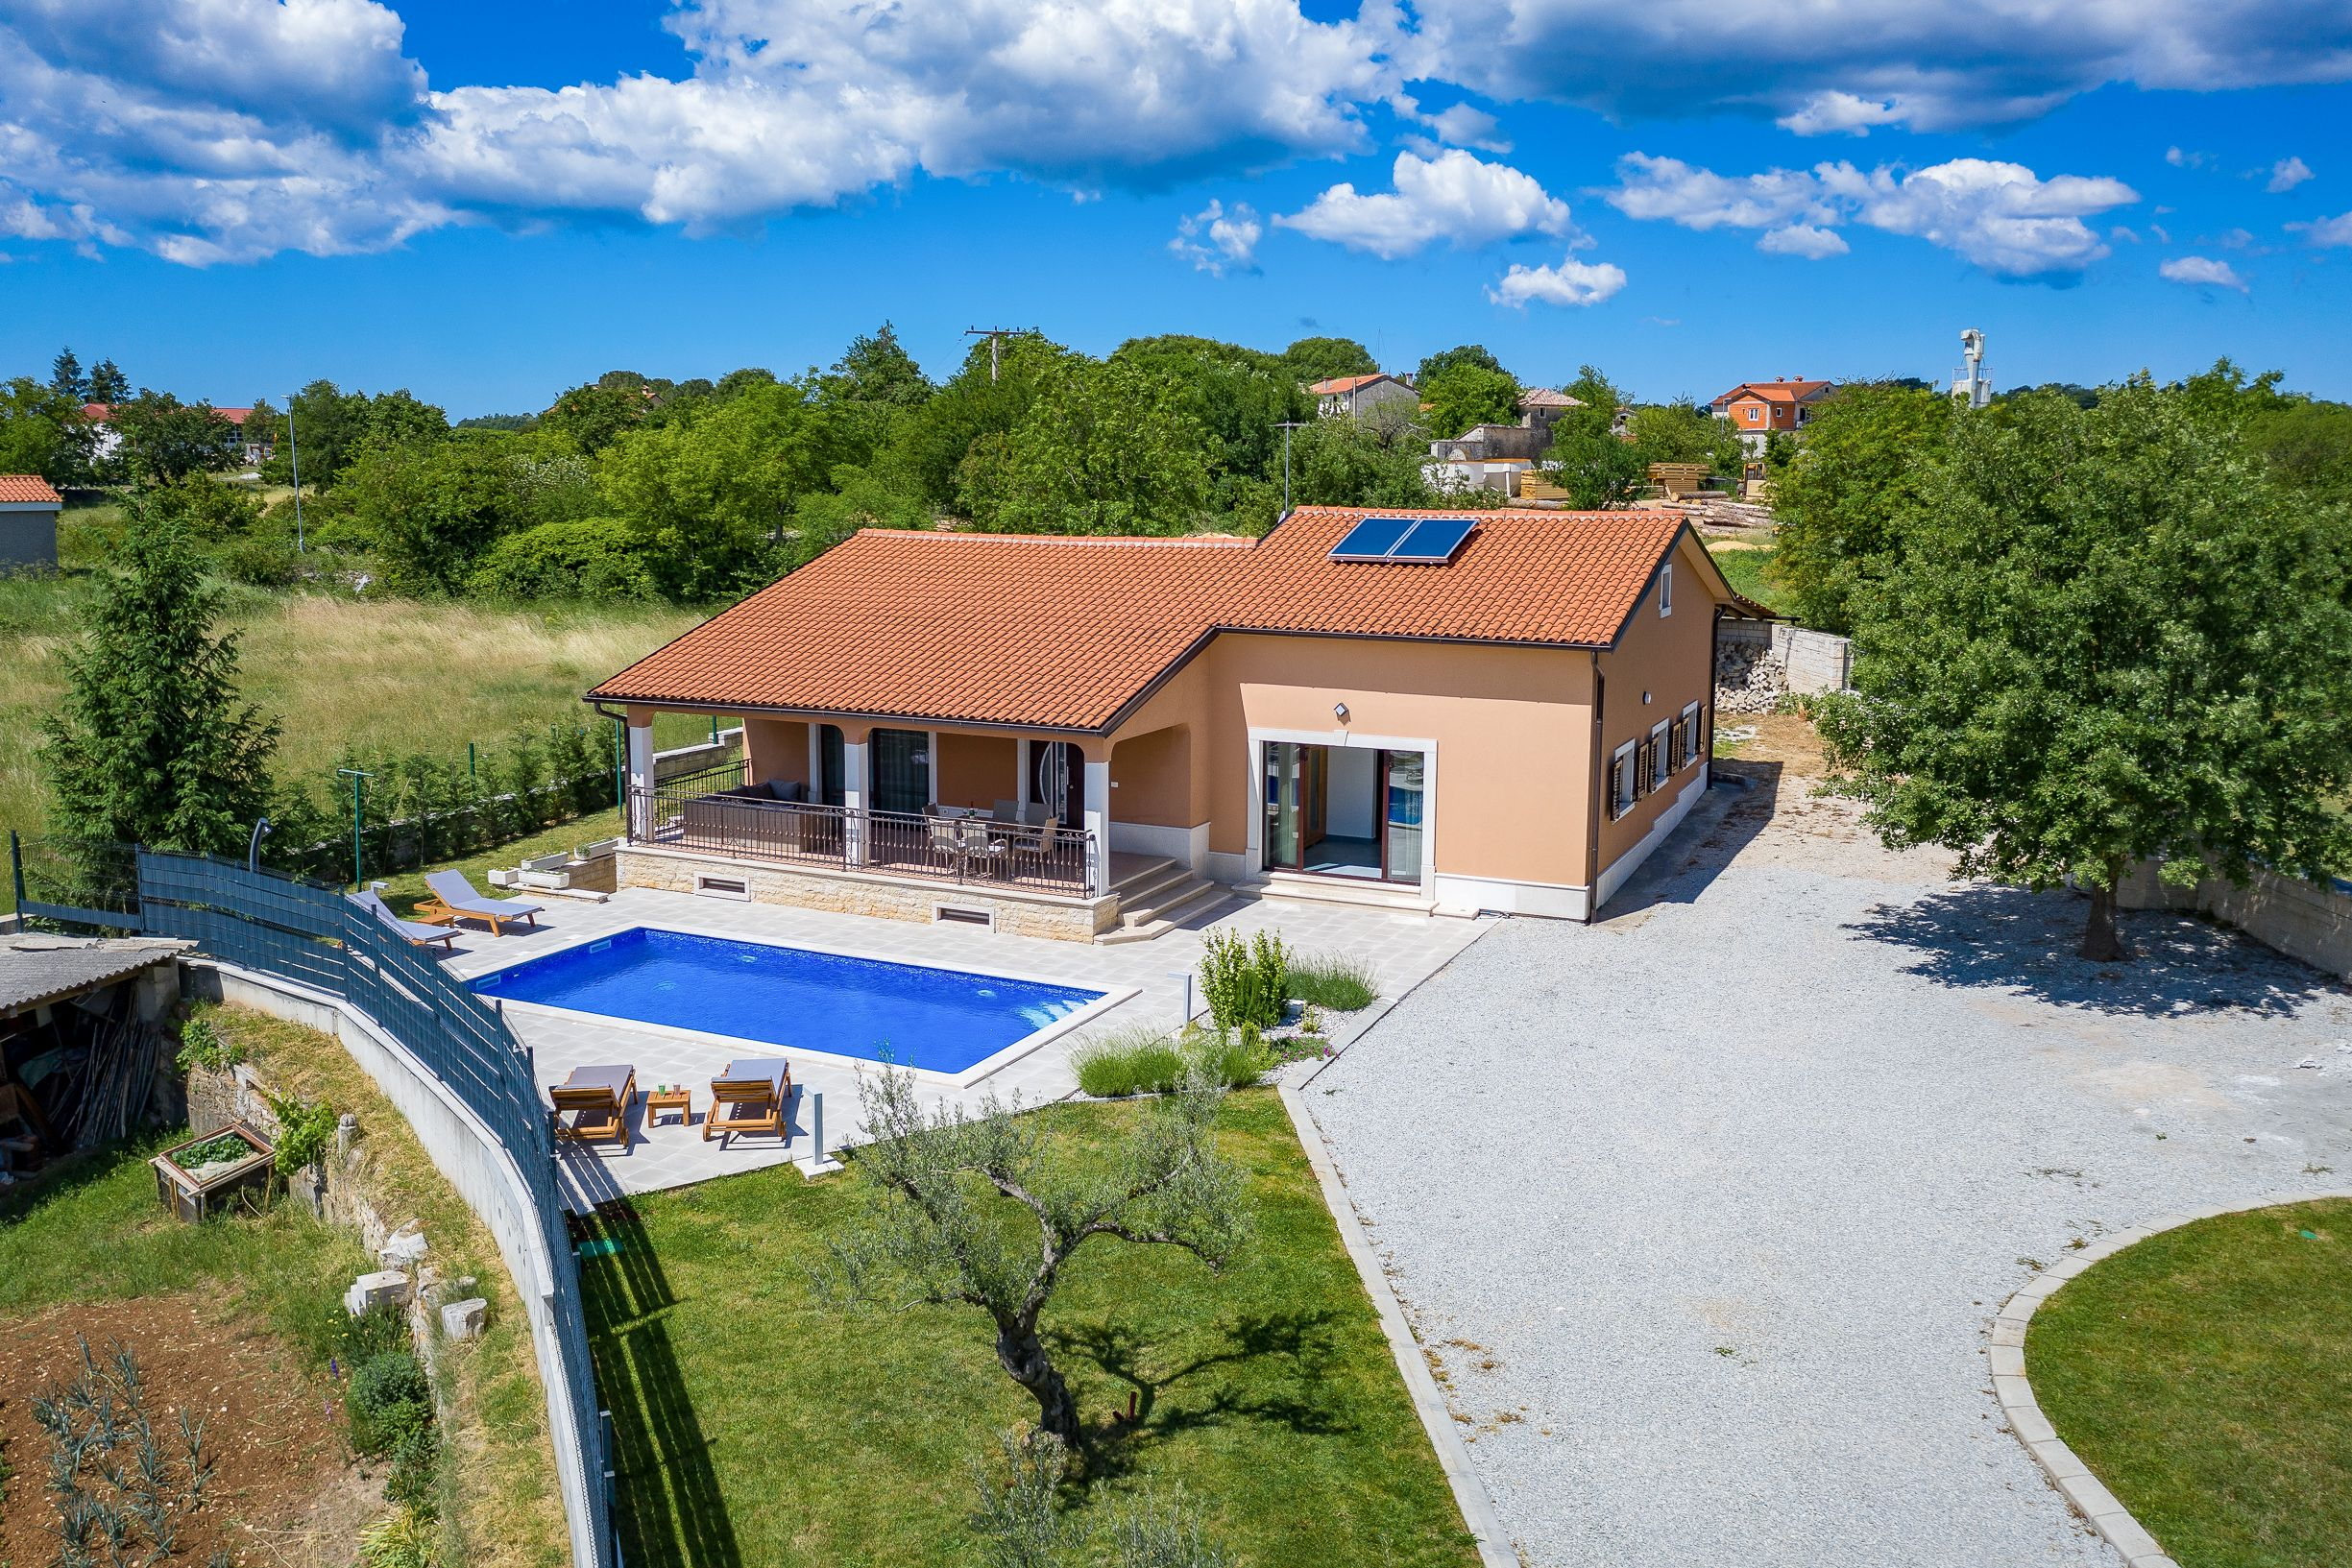 P-482 newly built bungalow with pool in a quiet location with a large garden of approx. 1,600 m²